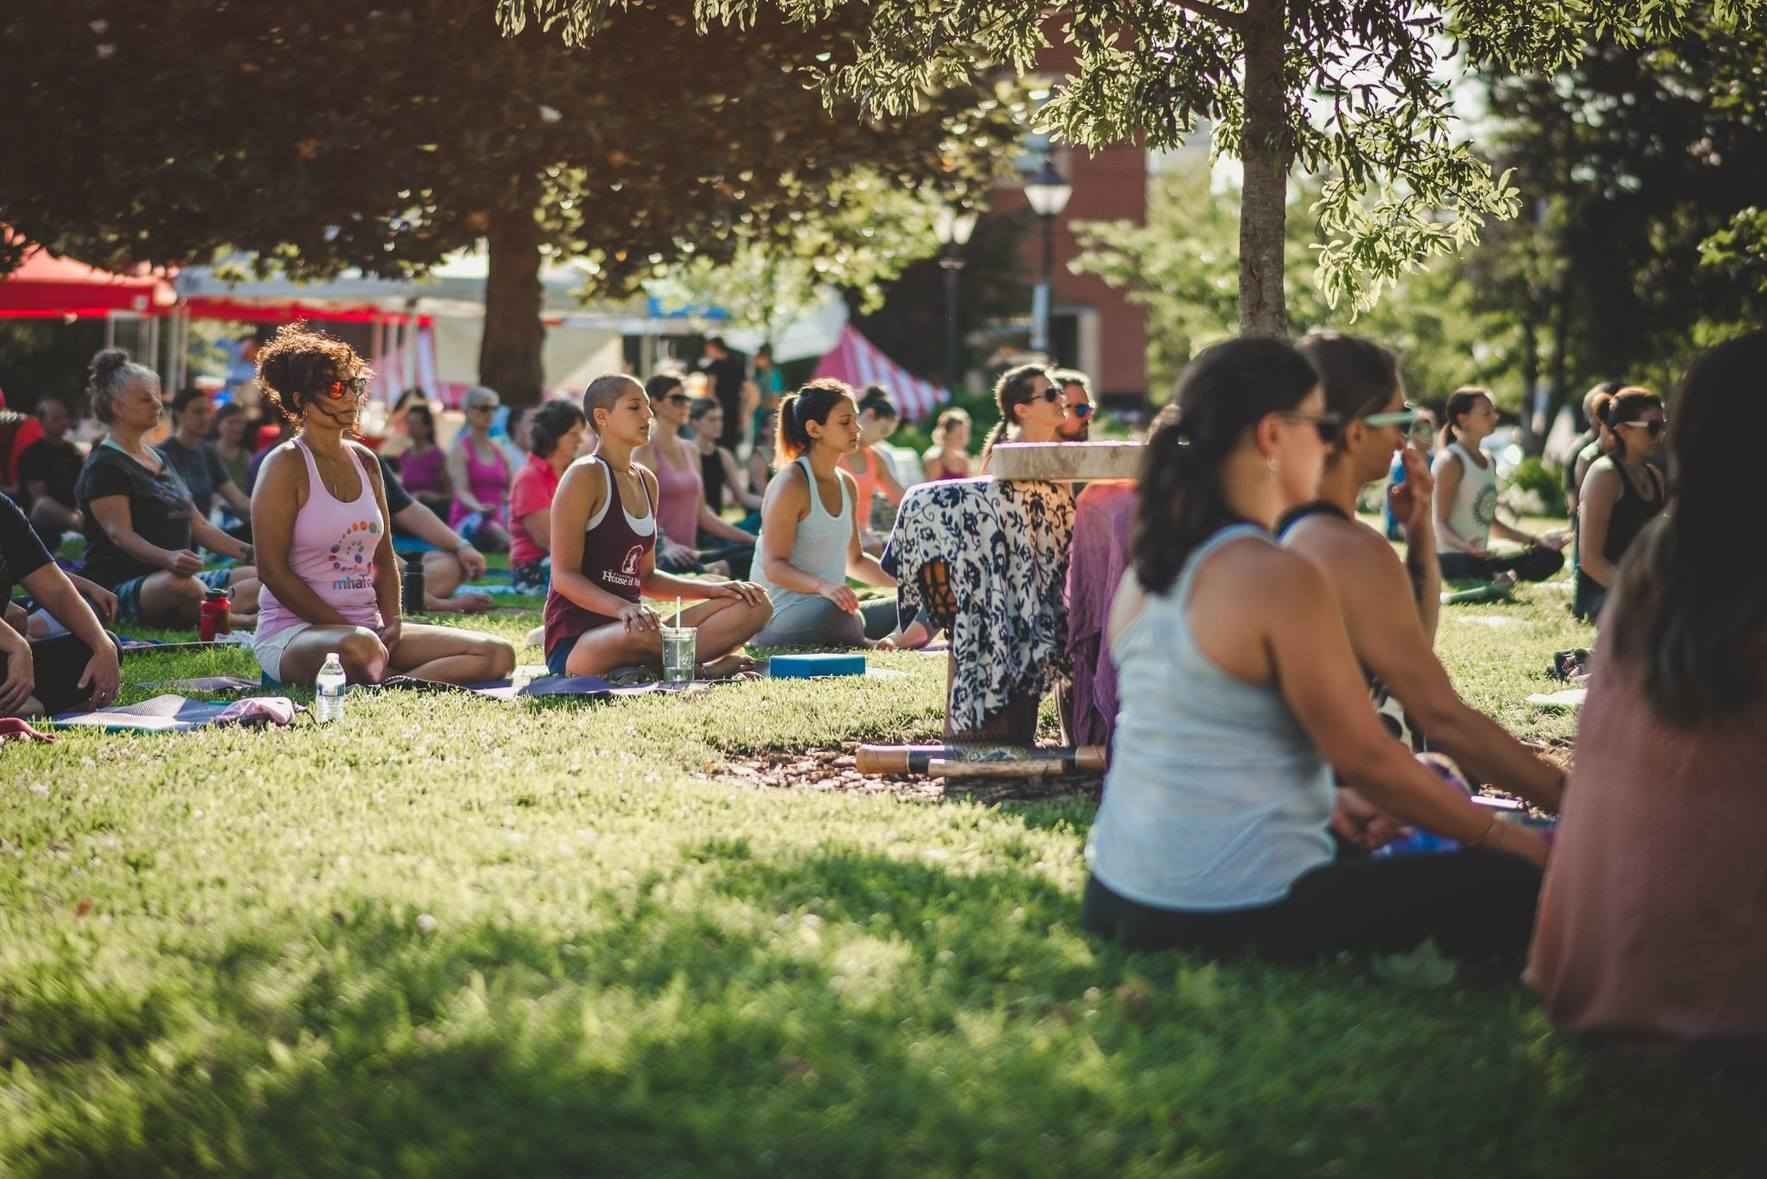 2019 Yoga in the Park image